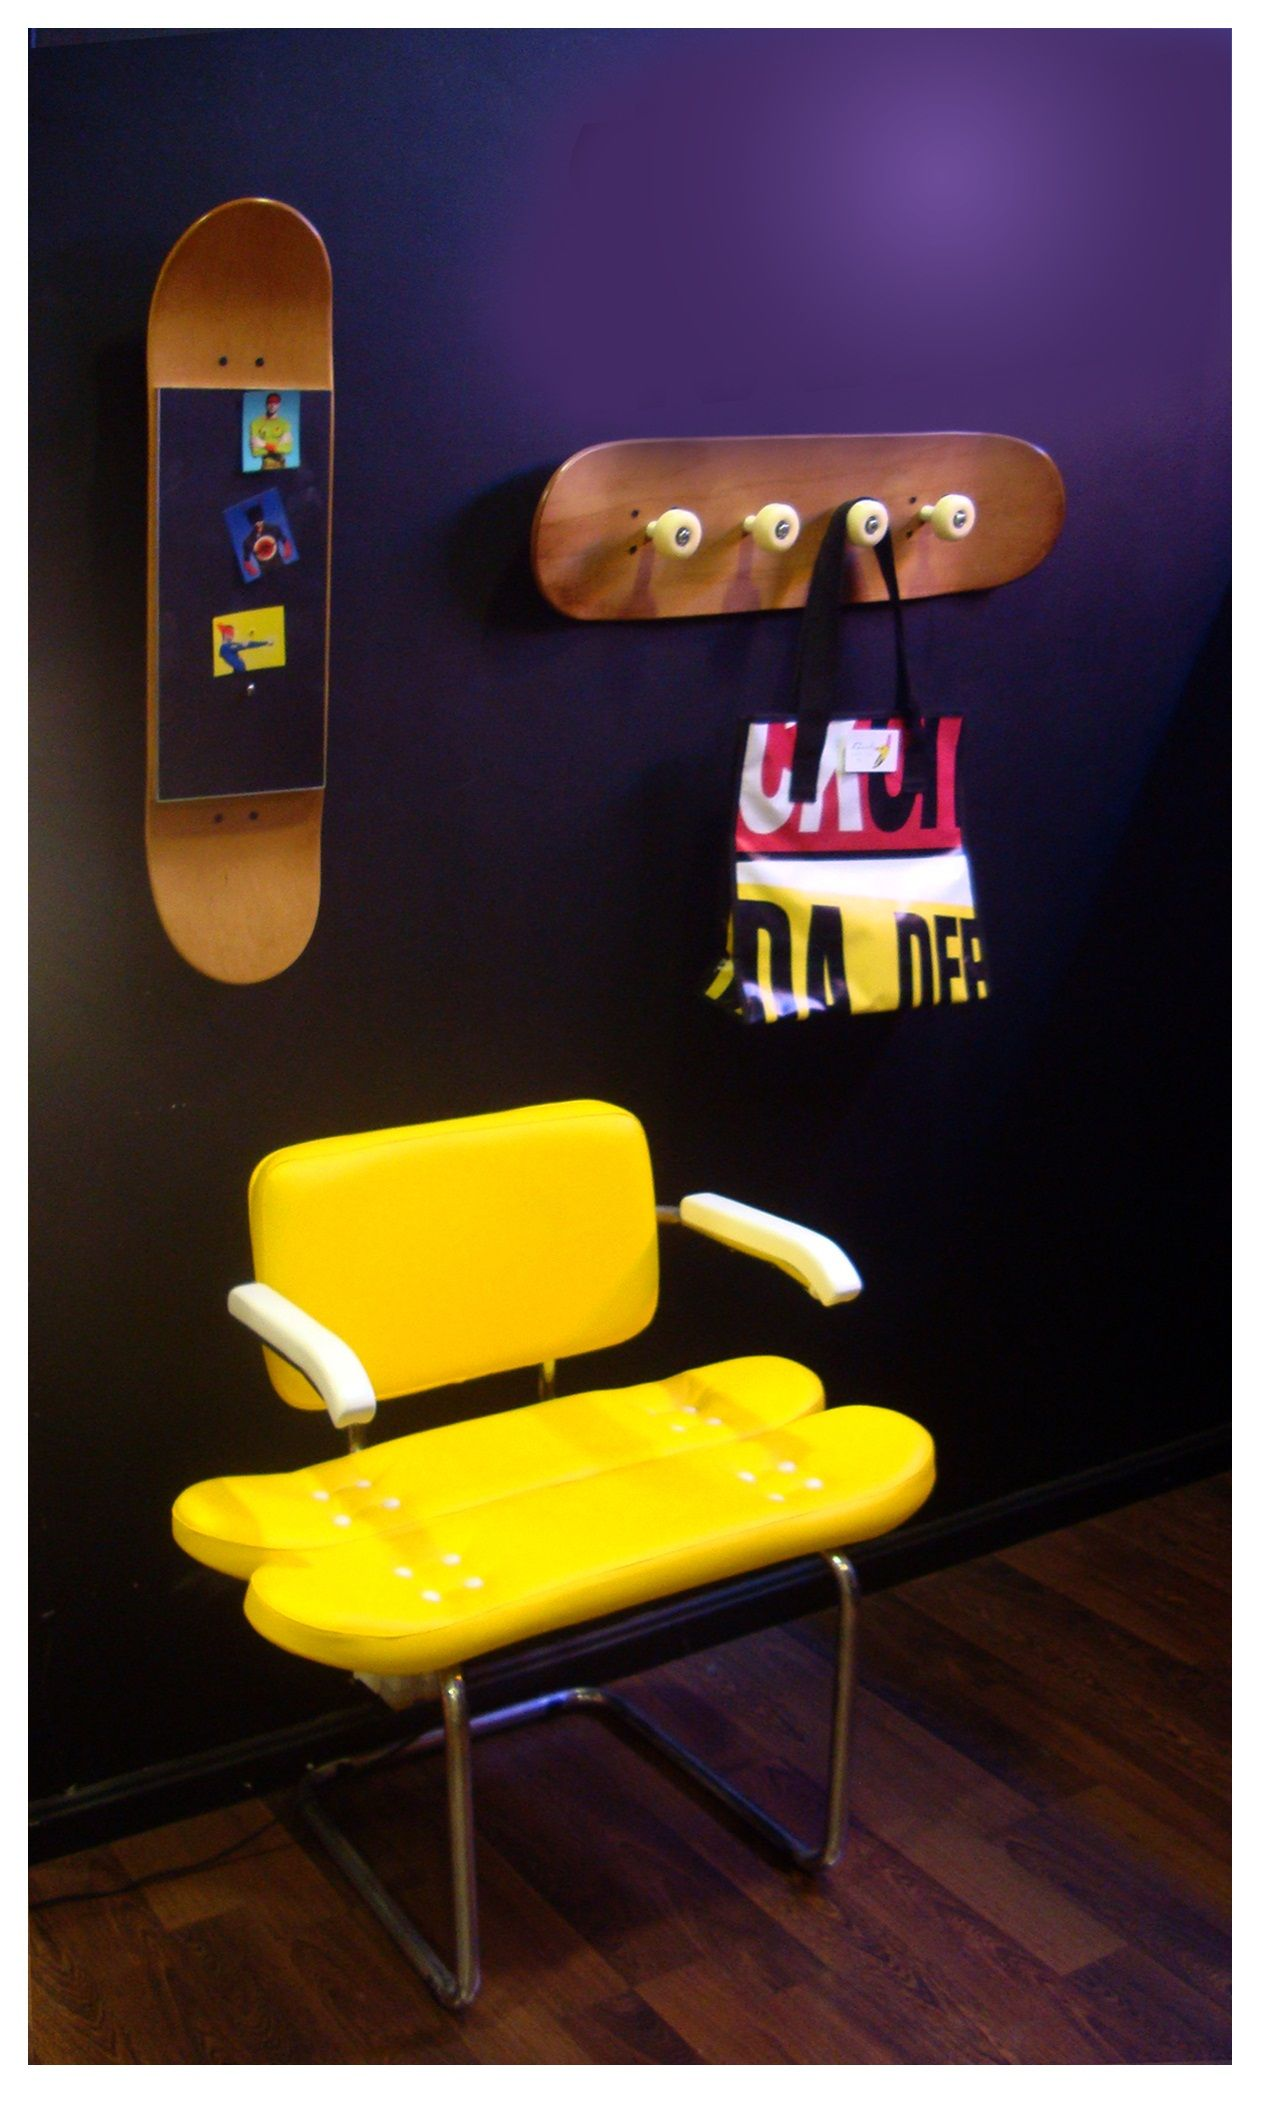 Cool yellow chair mirror and coat rack furniture design for Cool furniture ideas